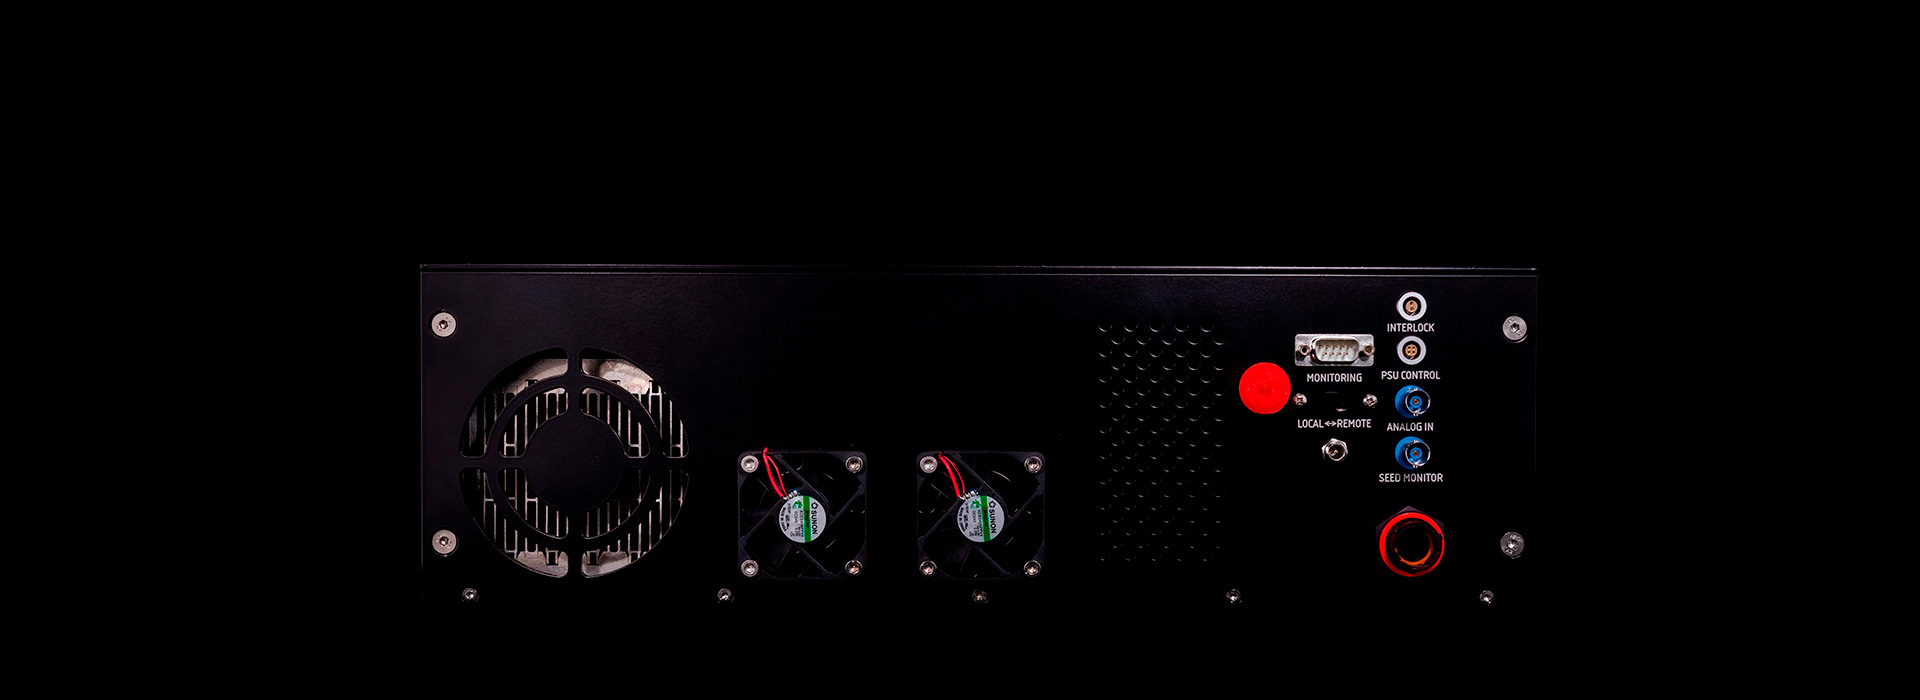 visible-series-488-515-532-nm-fiber-lasers-amplifiers-or-lasers-back-rack